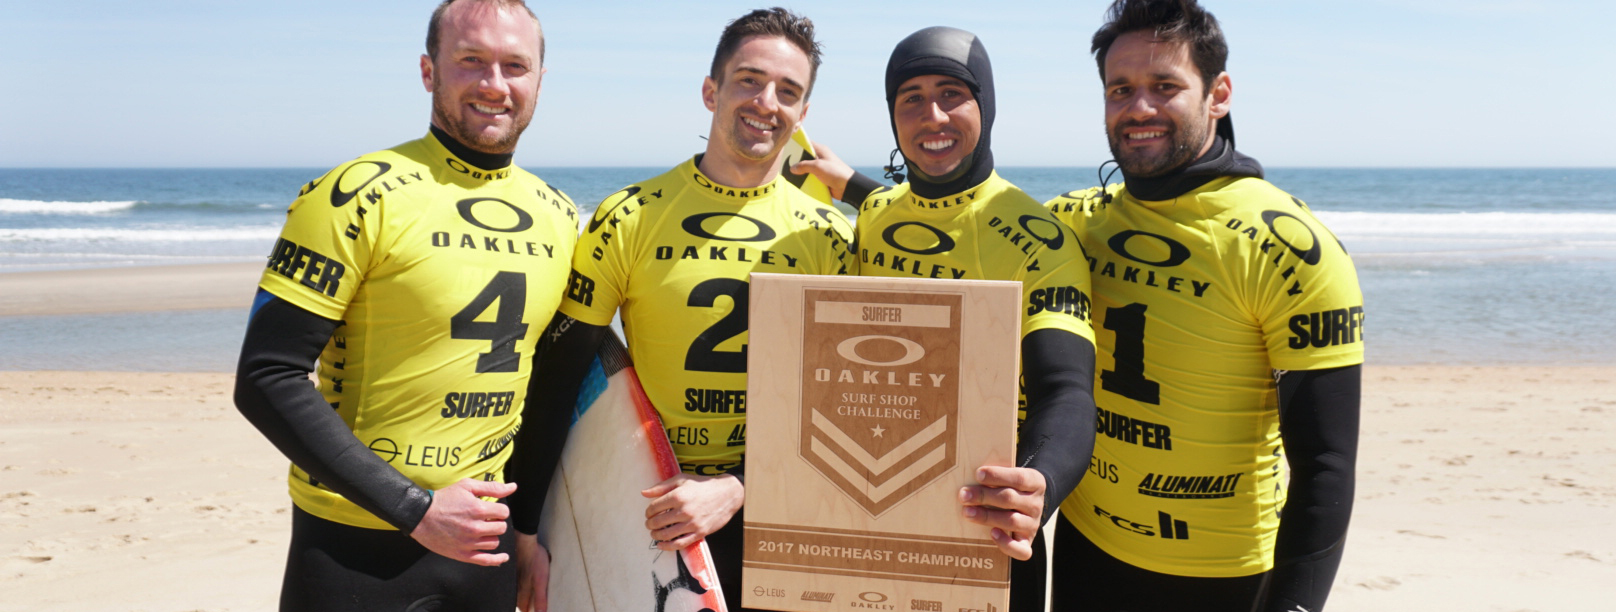 7th Street Surf Shop Re-Claims the Northeast Title!